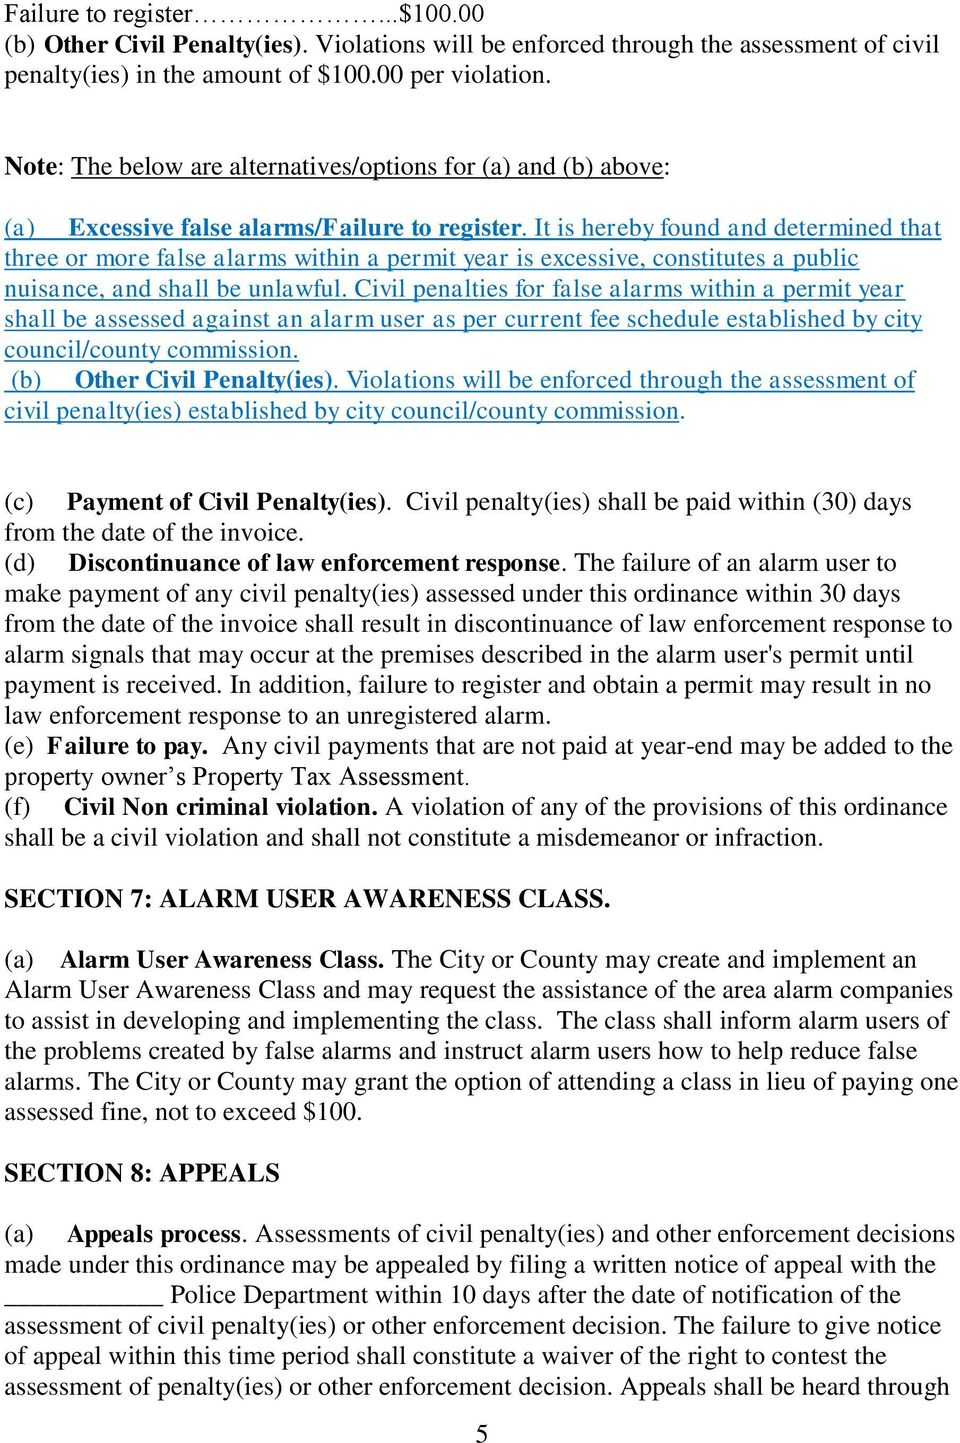 It is hereby found and determined that three or more false alarms within a permit year is excessive, constitutes a public nuisance, and shall be unlawful.